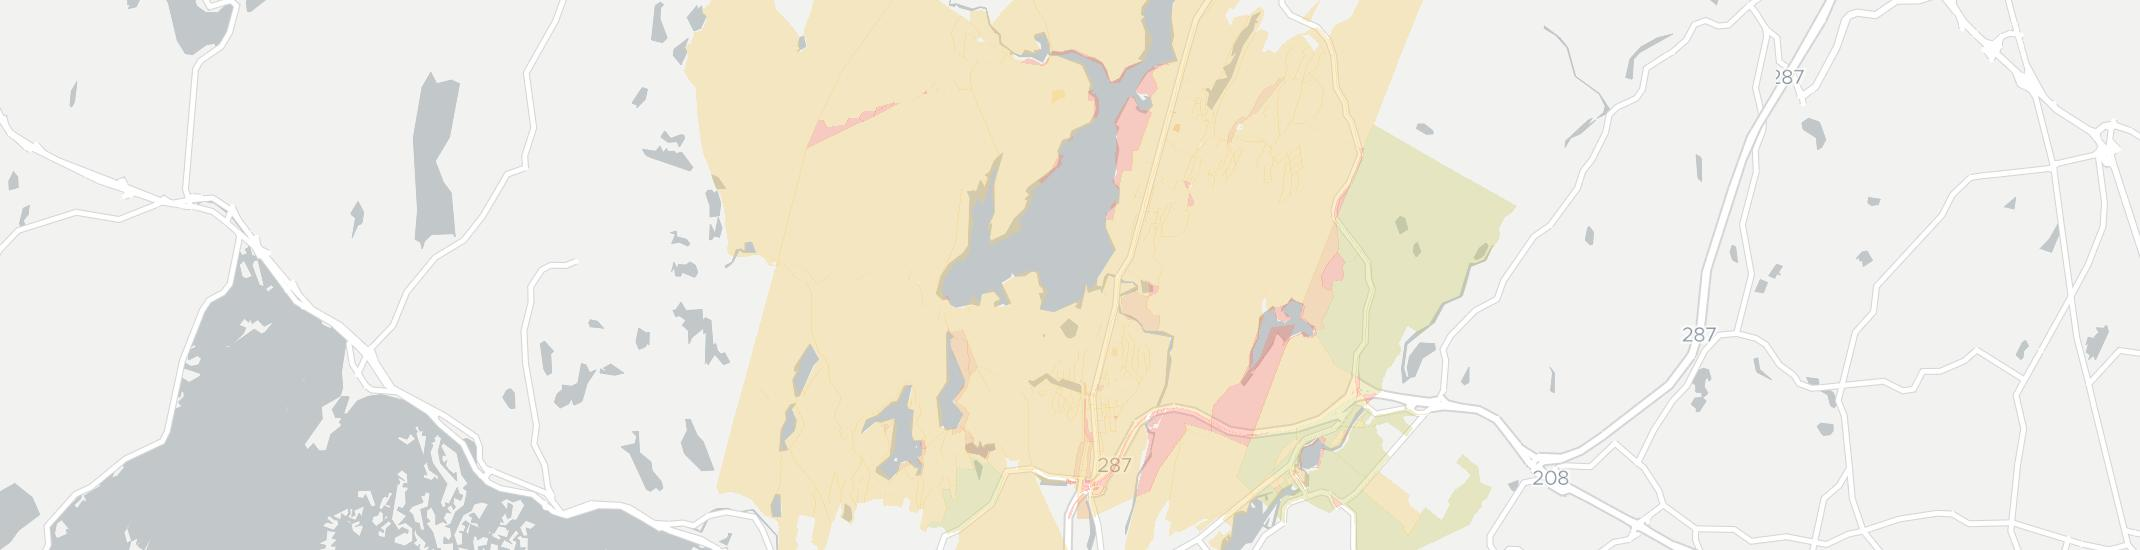 Wanaque Internet Competition Map. Click for interactive map.